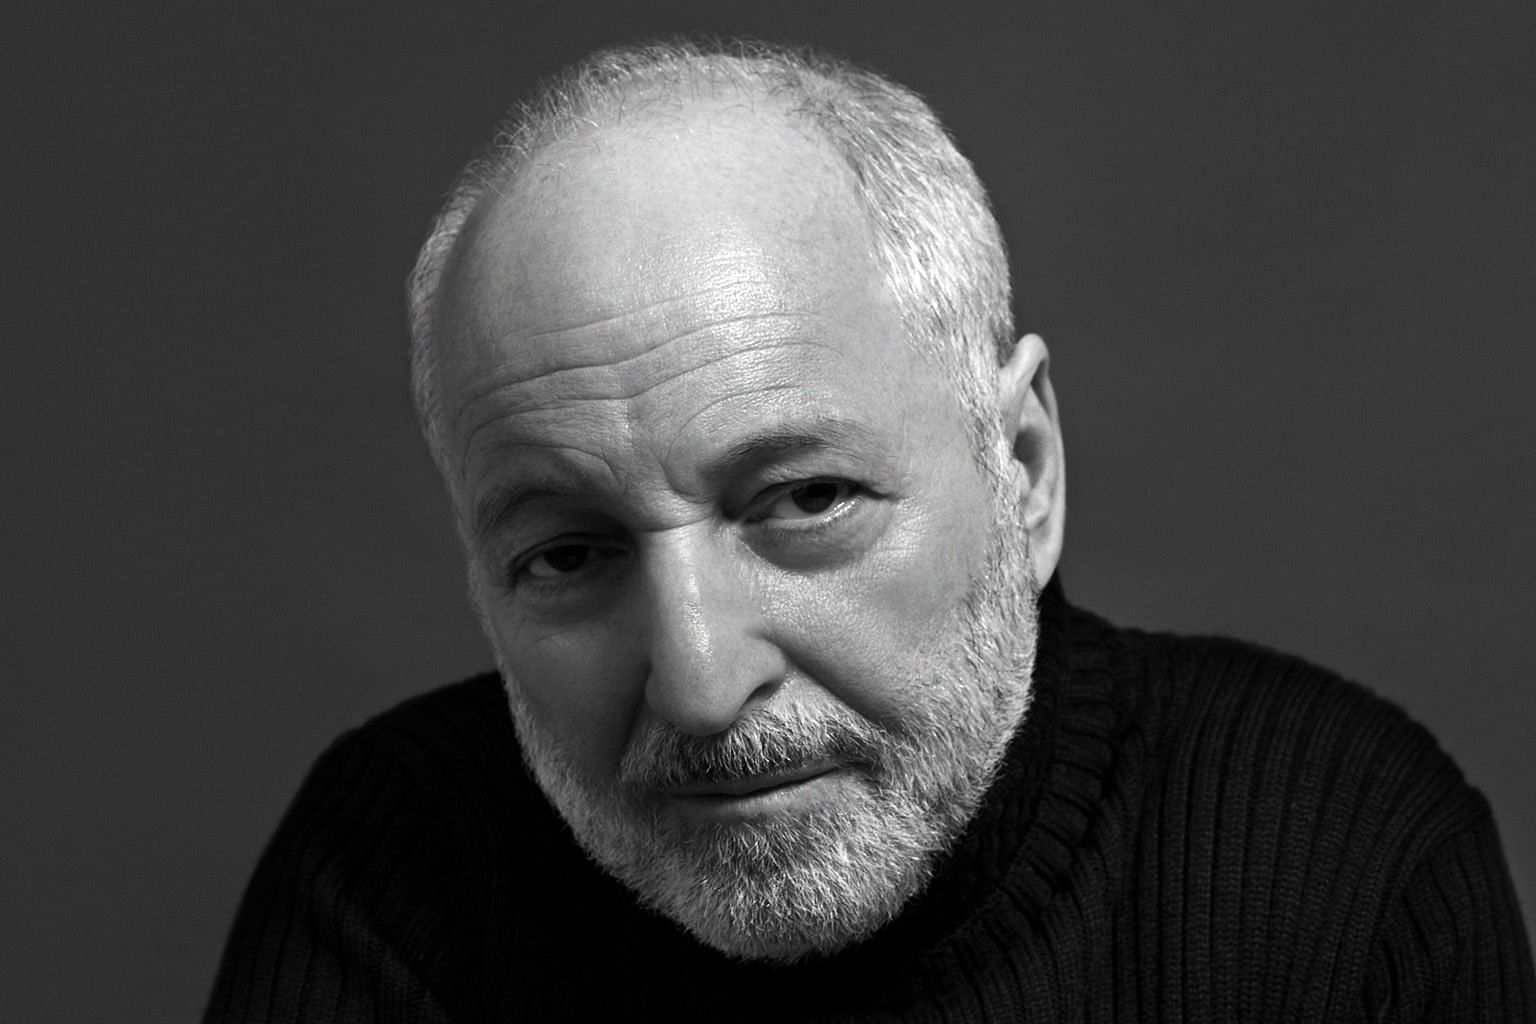 Andre Aciman began writing Find Me soon after Call Me By Your Name was published, but could not find a way to make the follow-up work until three years ago.